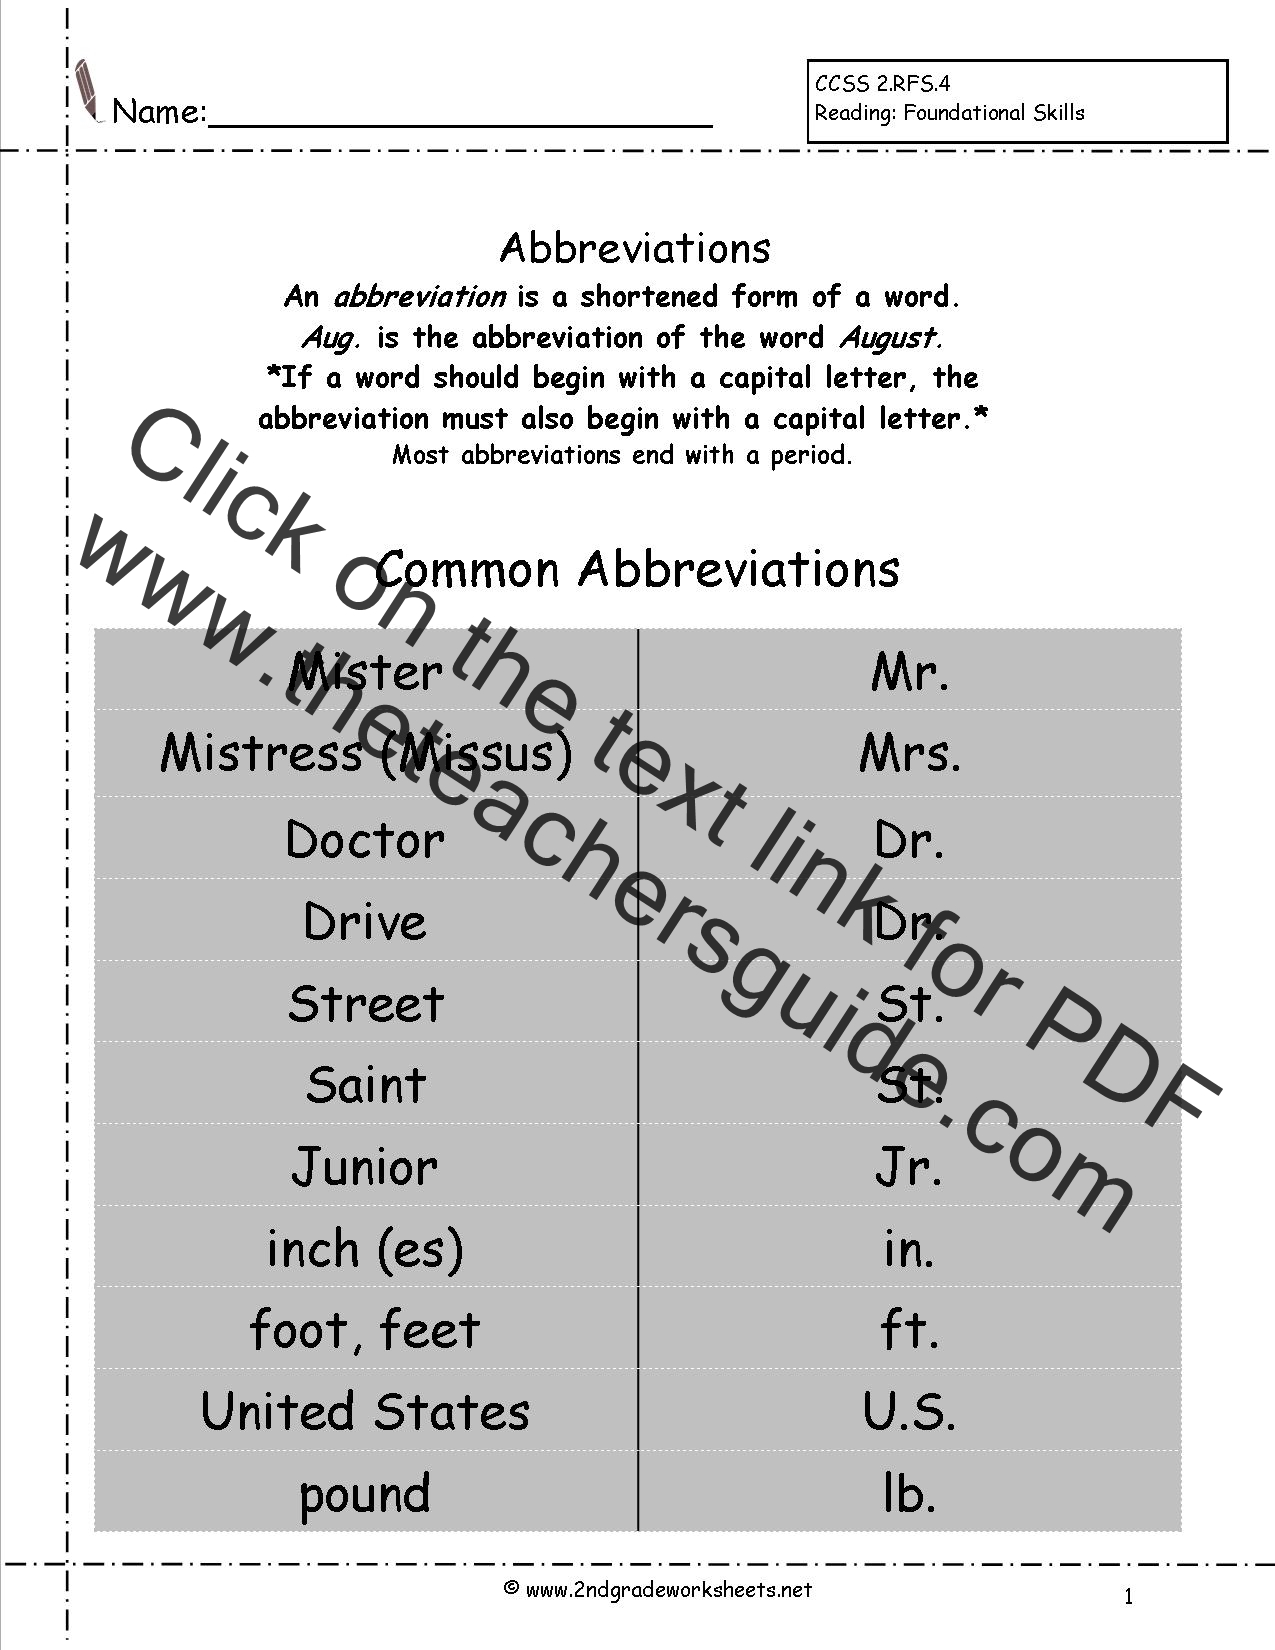 Worksheets Grammar Worksheets For 2nd Grade free languagegrammar worksheets and printouts abbreviaitons worksheets